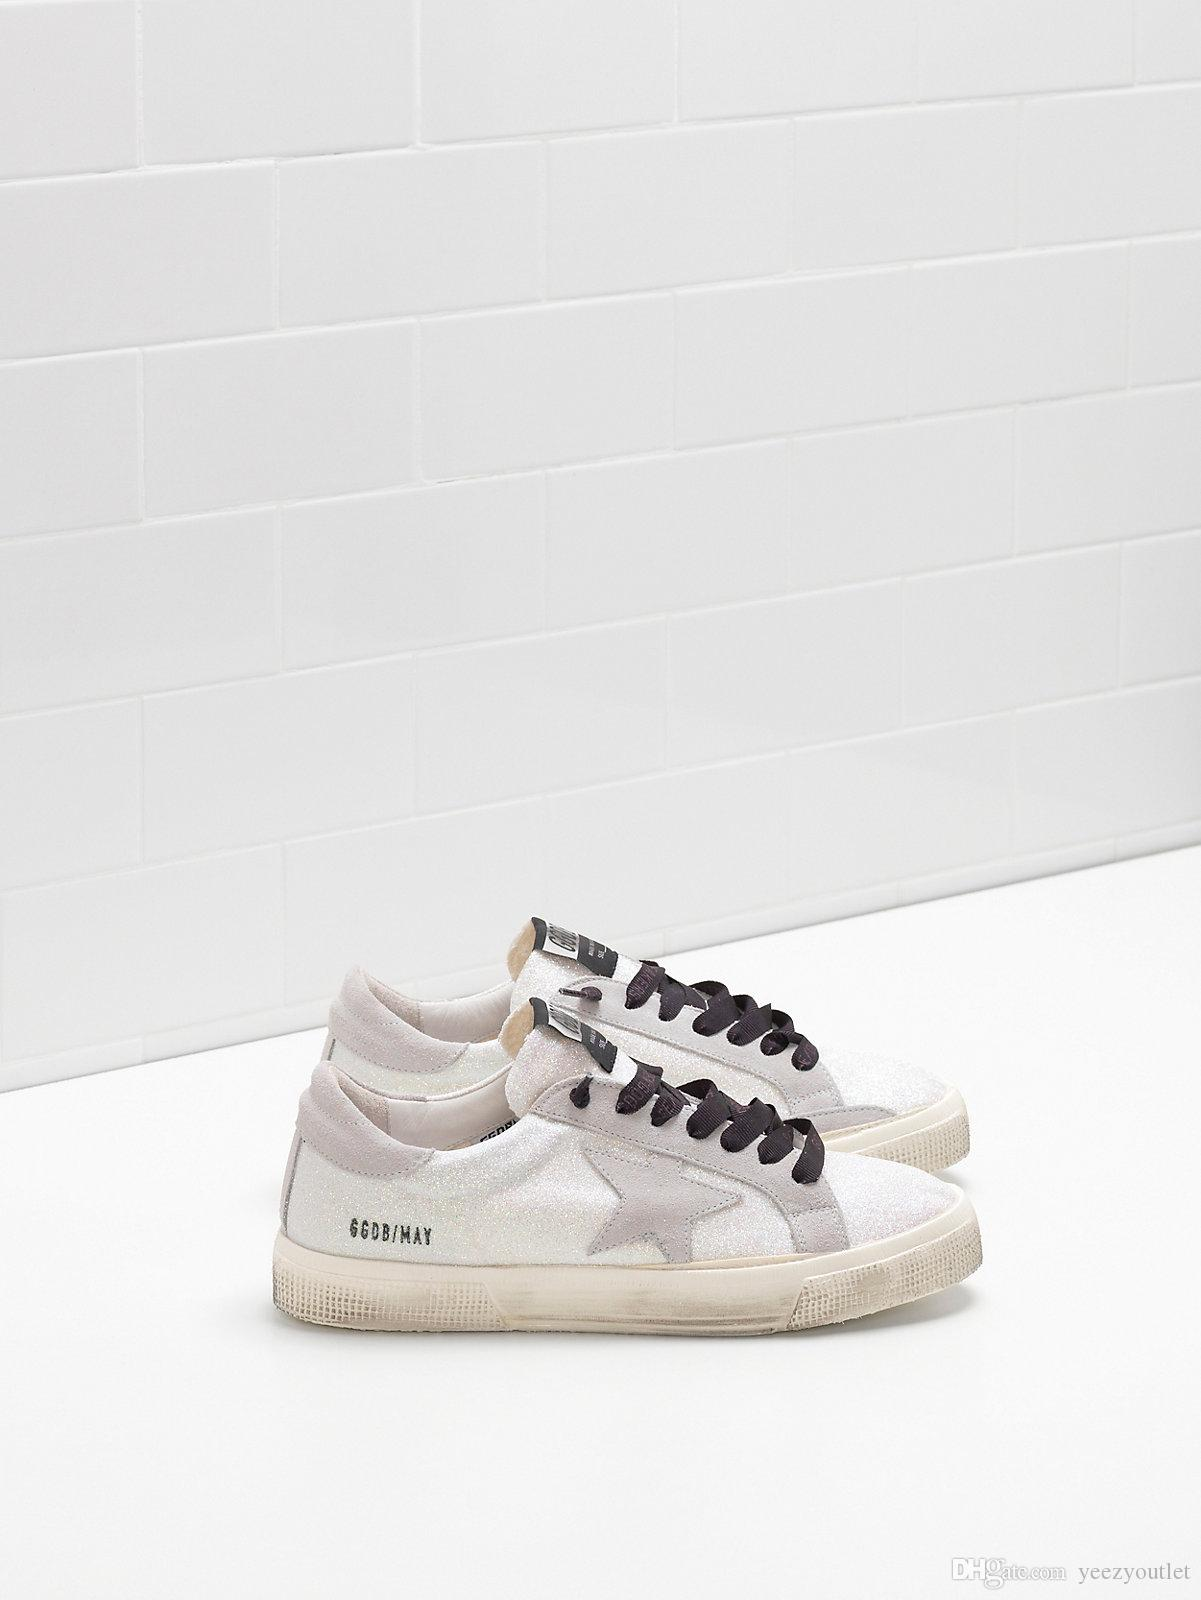 Italy Luxury Genuine Leather Goose May Sneakers Upper In  Microglitter-coated Calf Leather Suede Star Heel Tab And Eyelets In Suede  Custom La Italy Luxury ... 4de1abb3c3e4